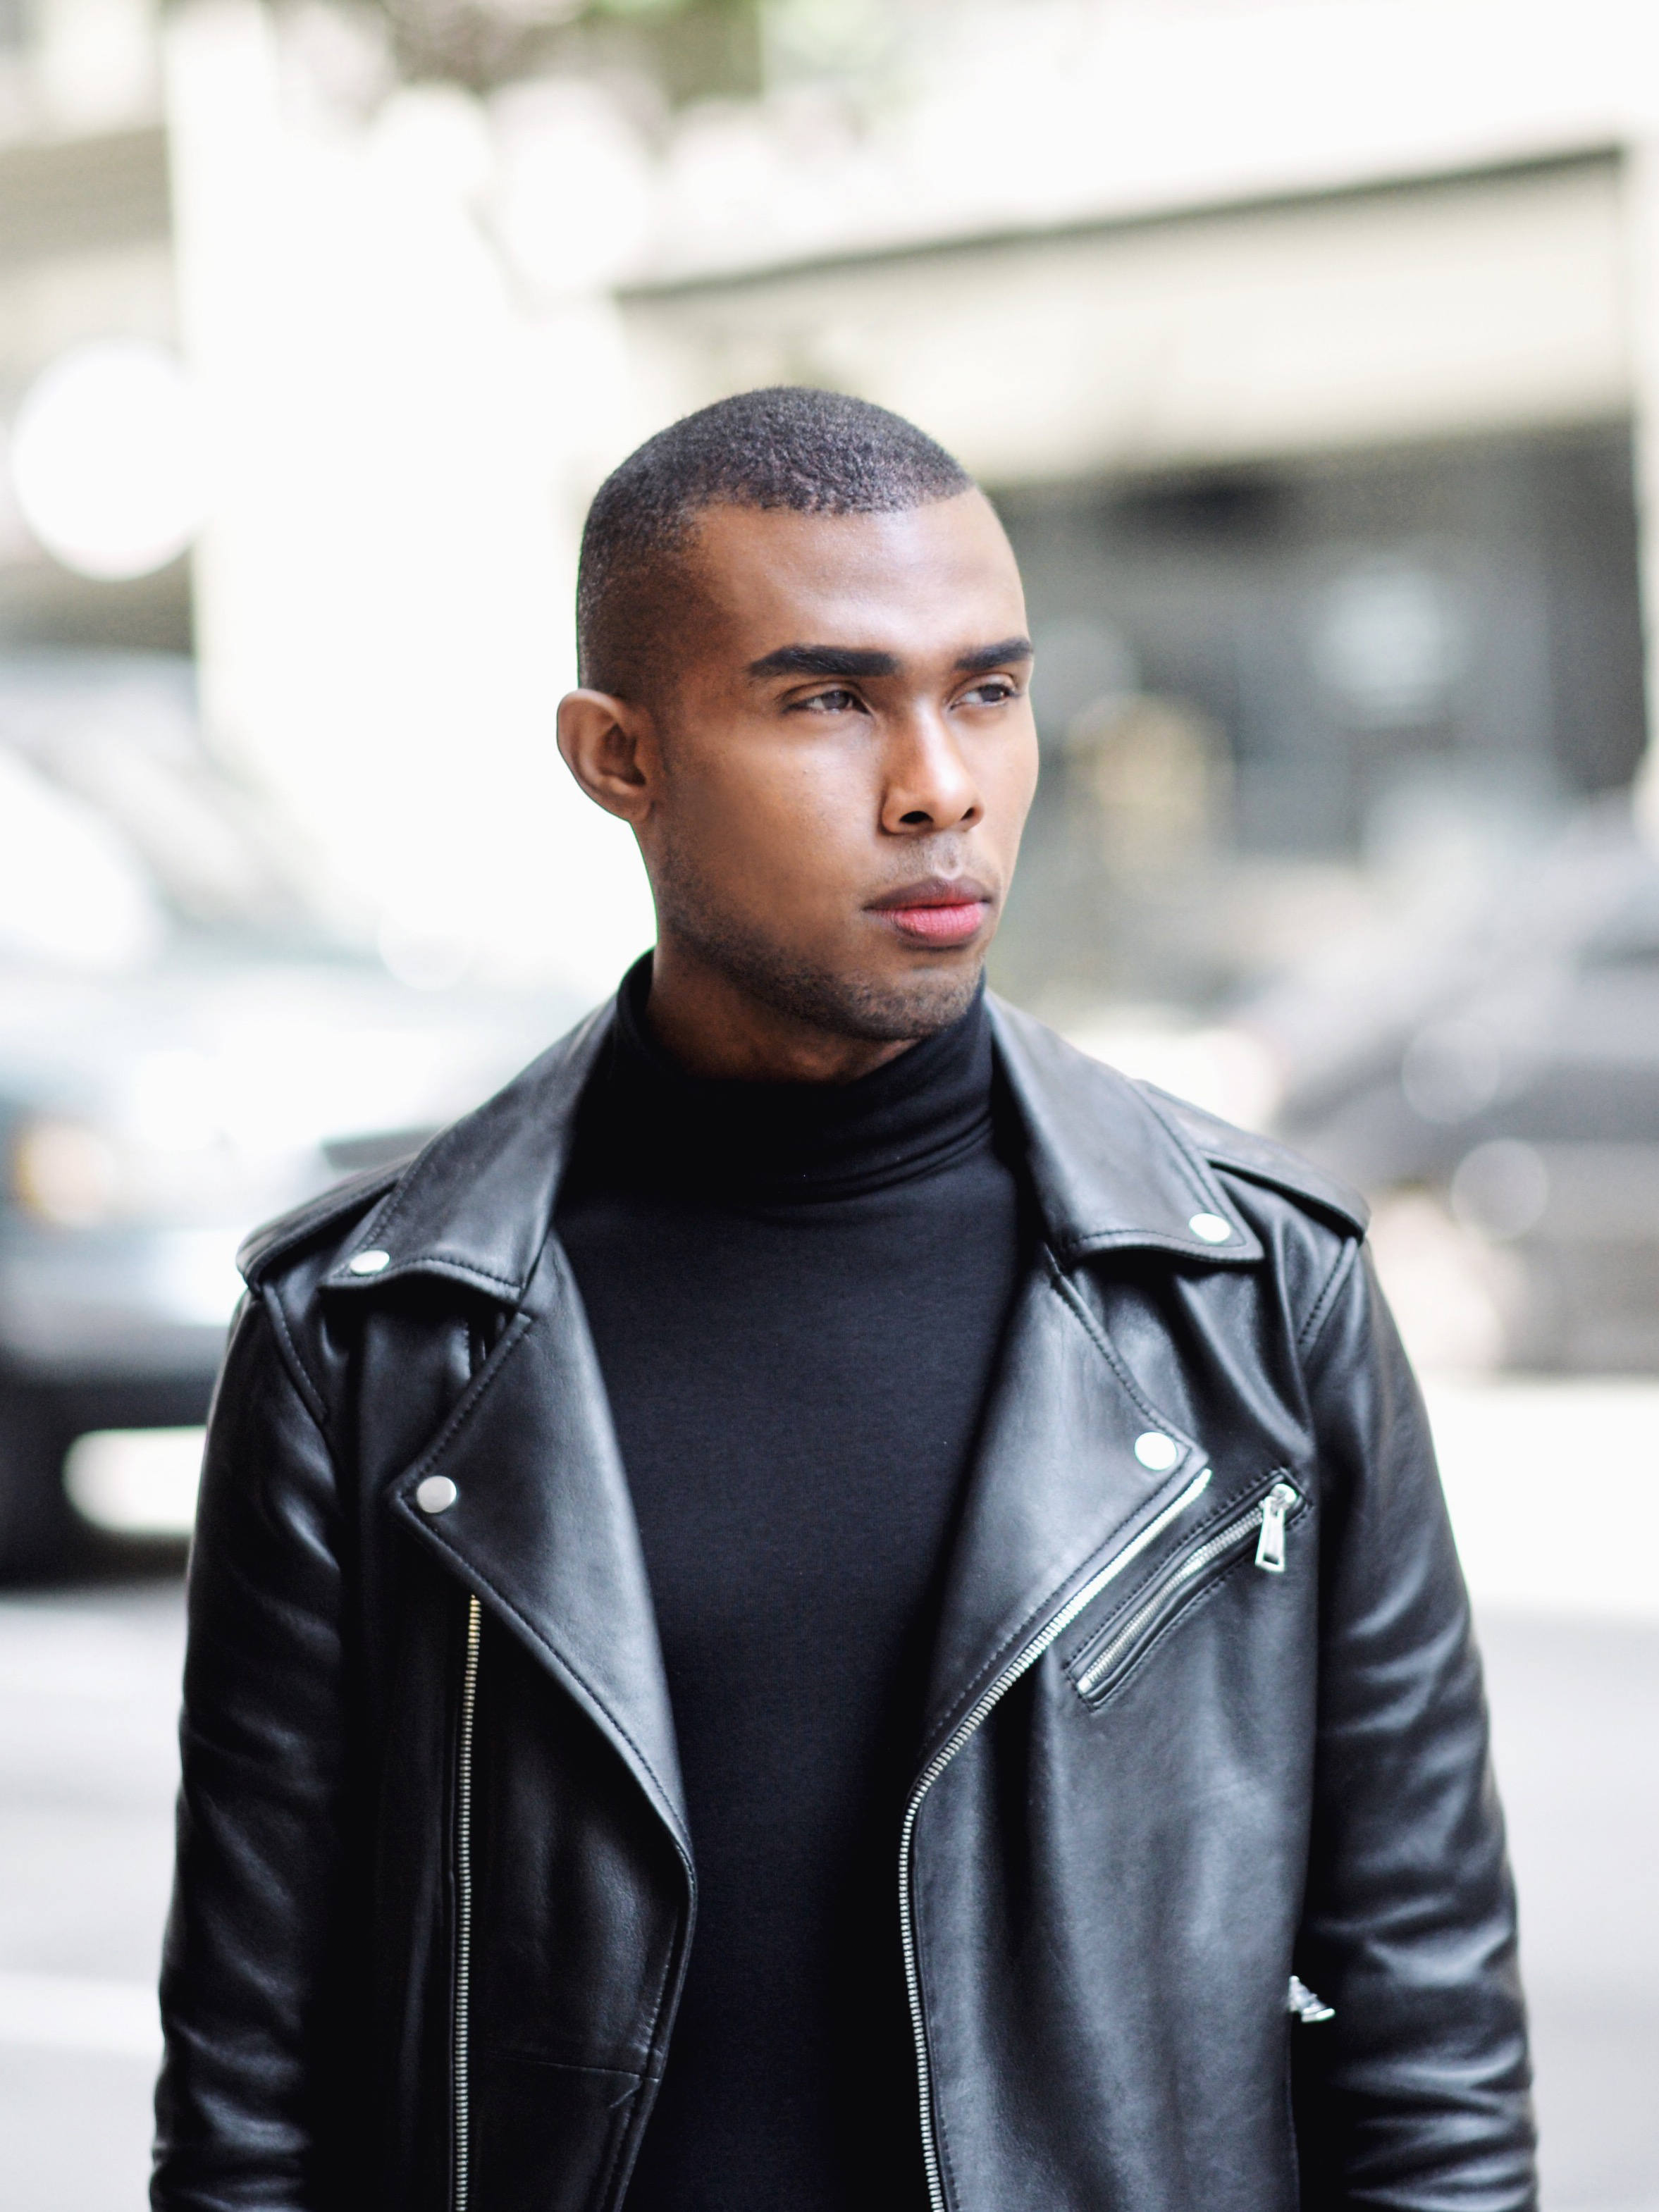 The-Look-Principle-Black-Leather-Biker Jacket-and Ripped-Jeans-7